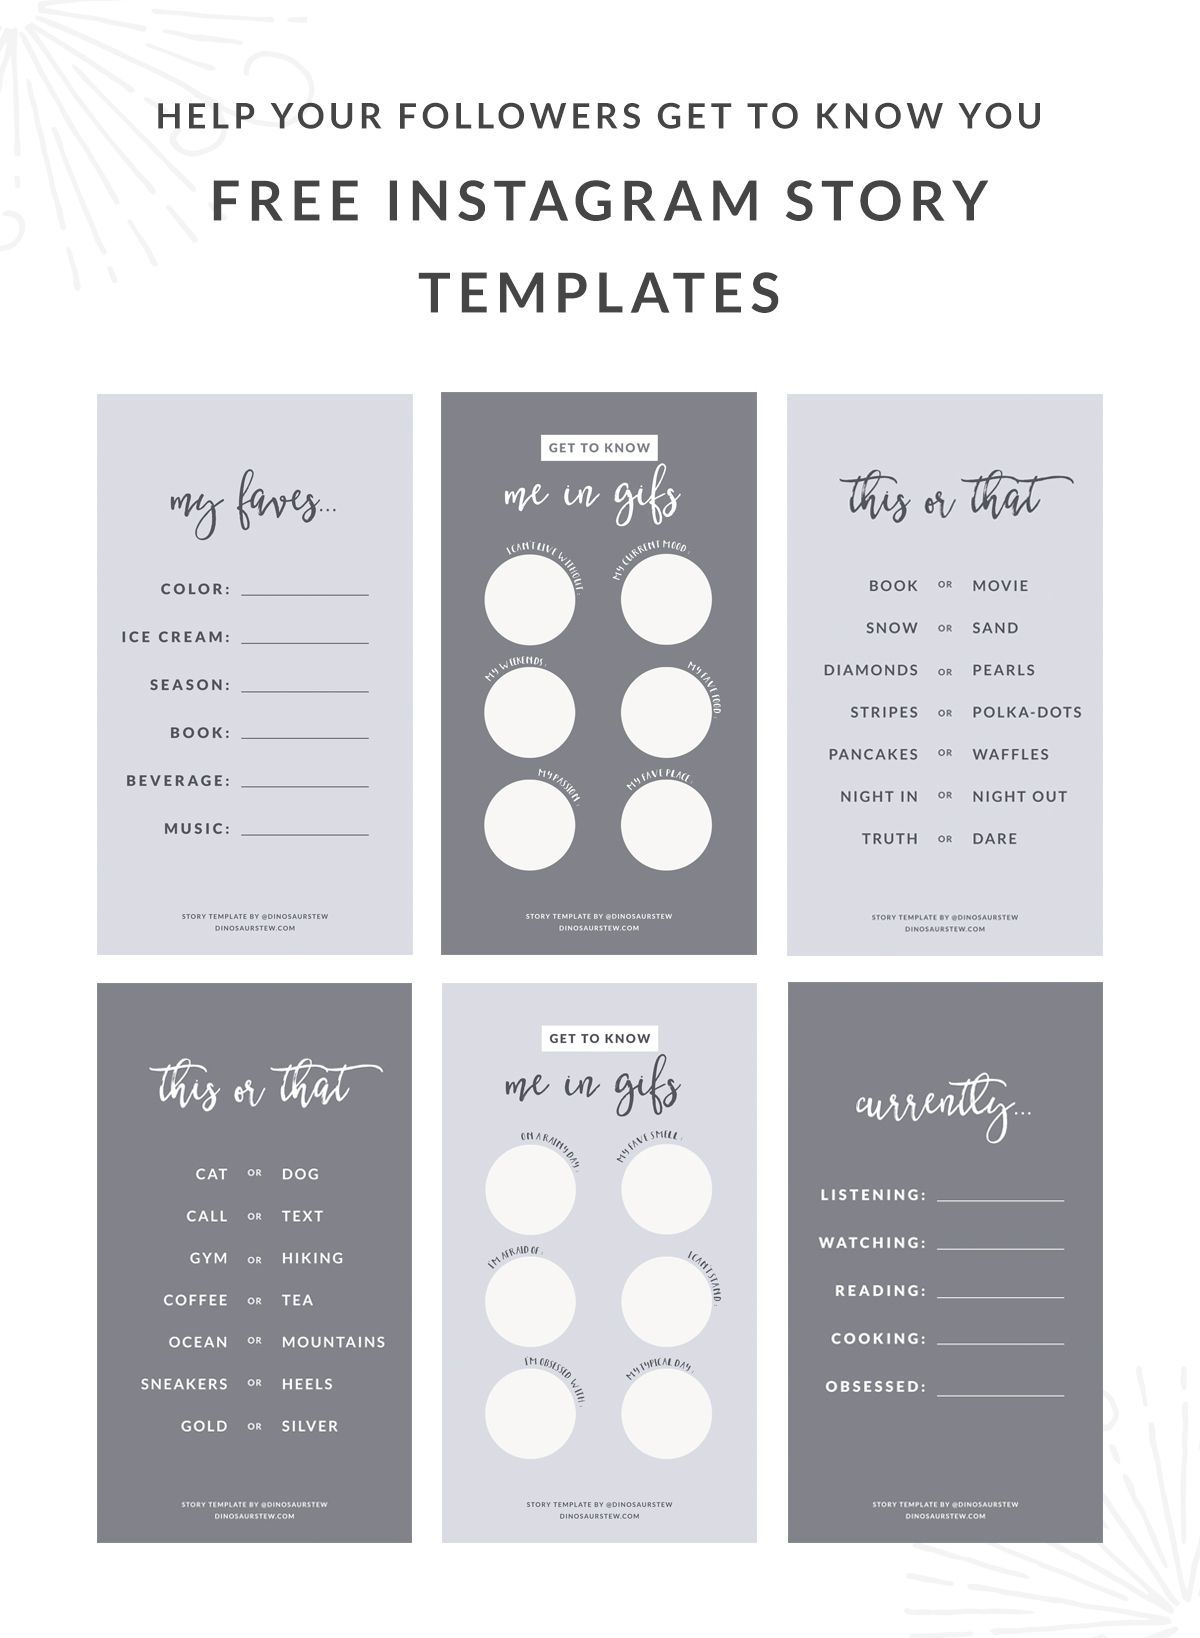 Free Instagram Story Templates To Help Your Followers Get To Know ...